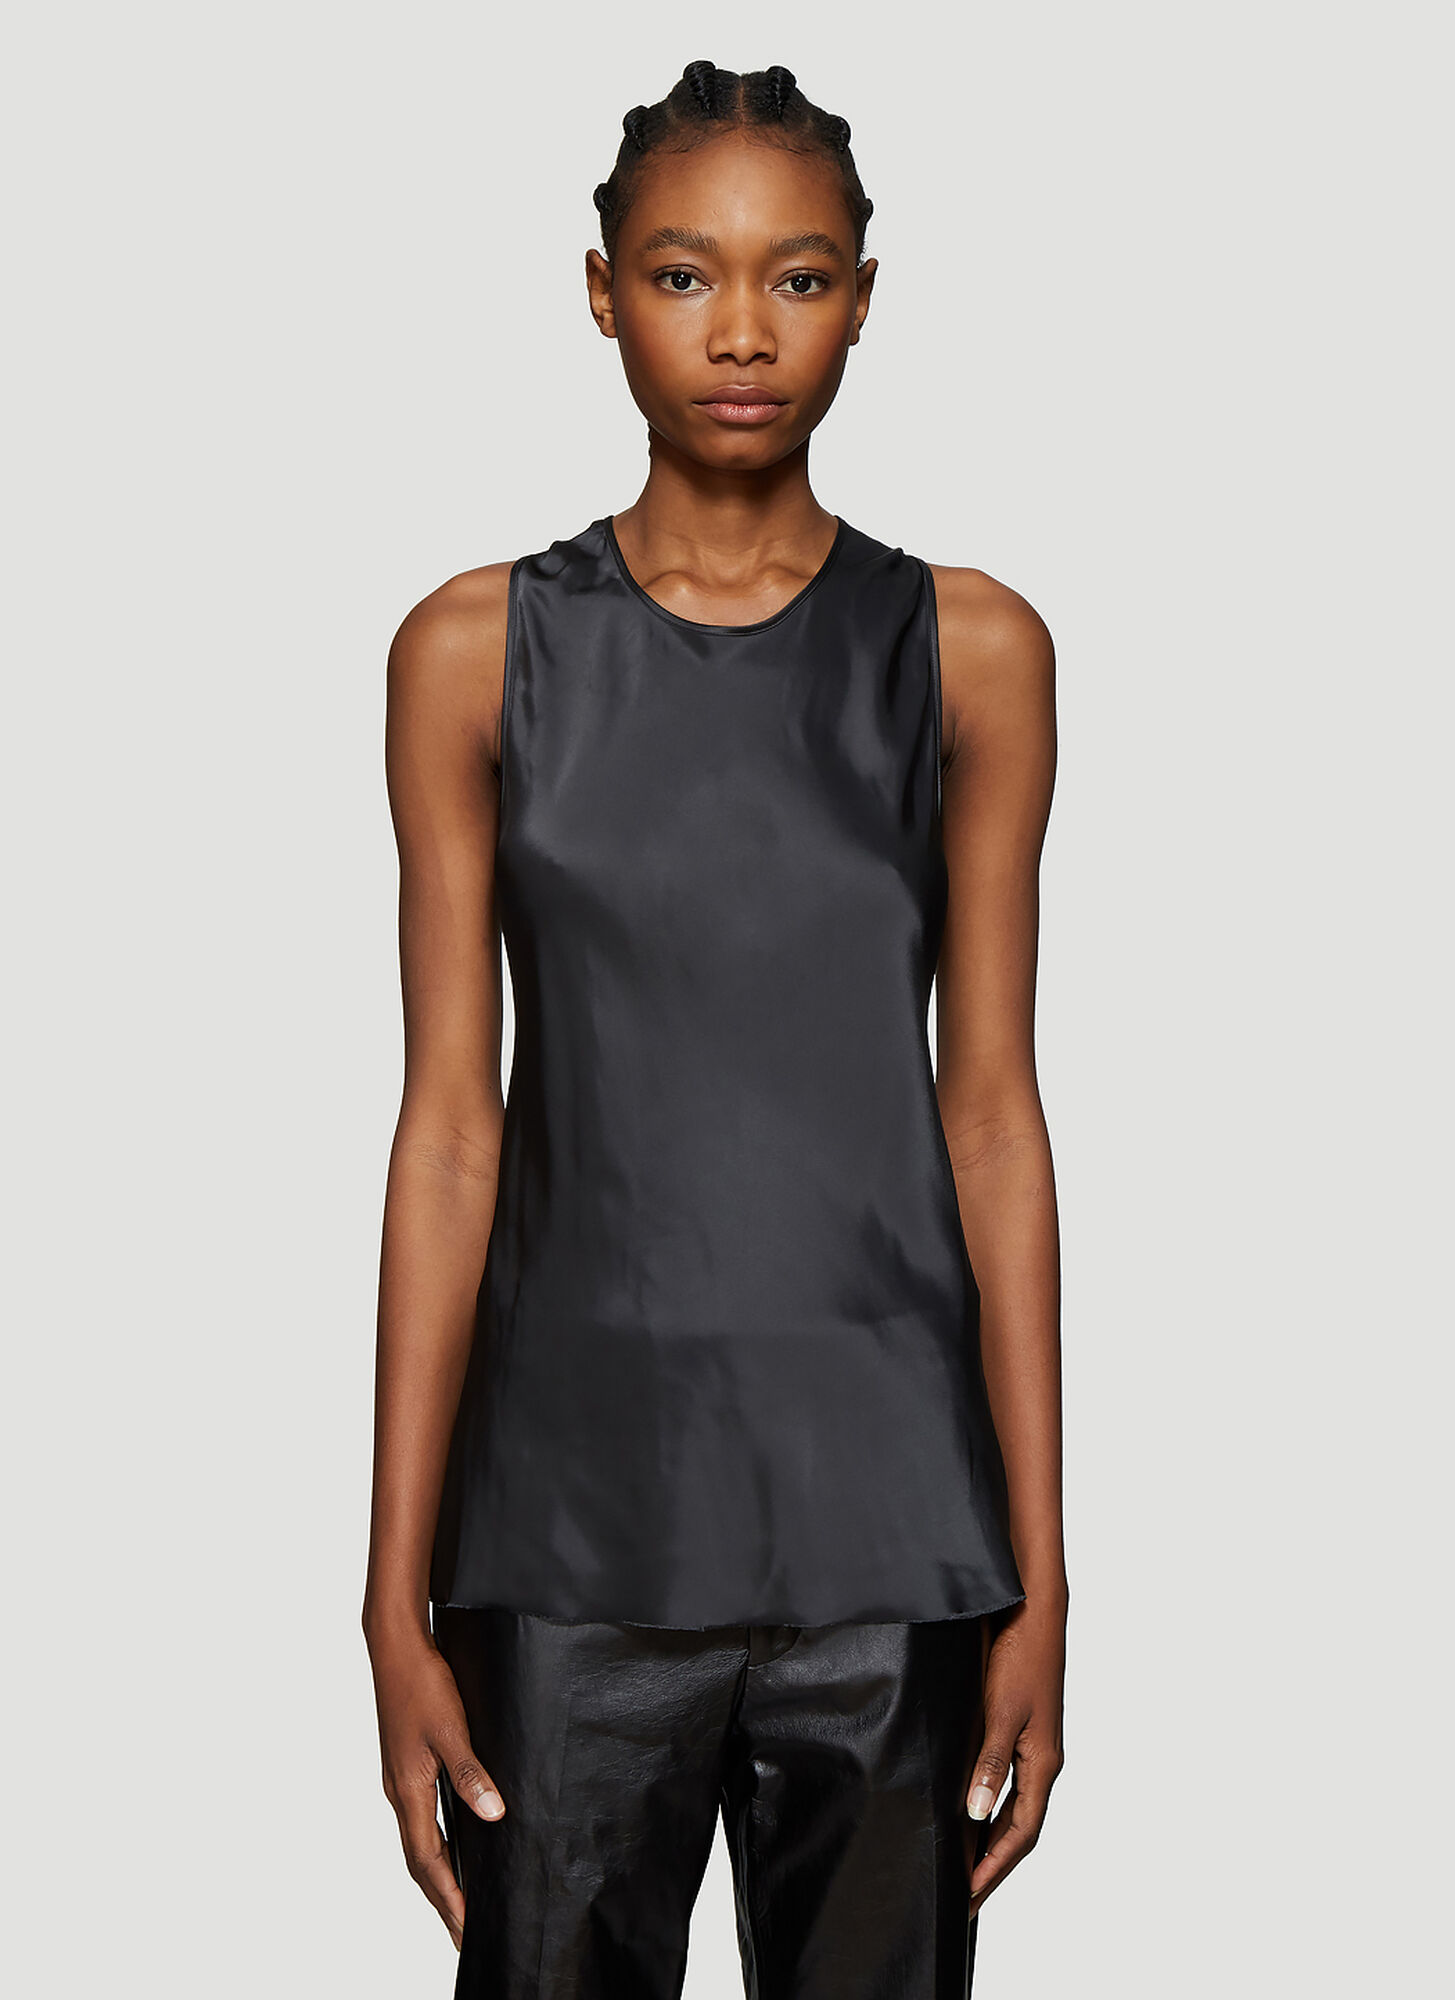 Helmut Lang Twist Detail Satin Top in Black